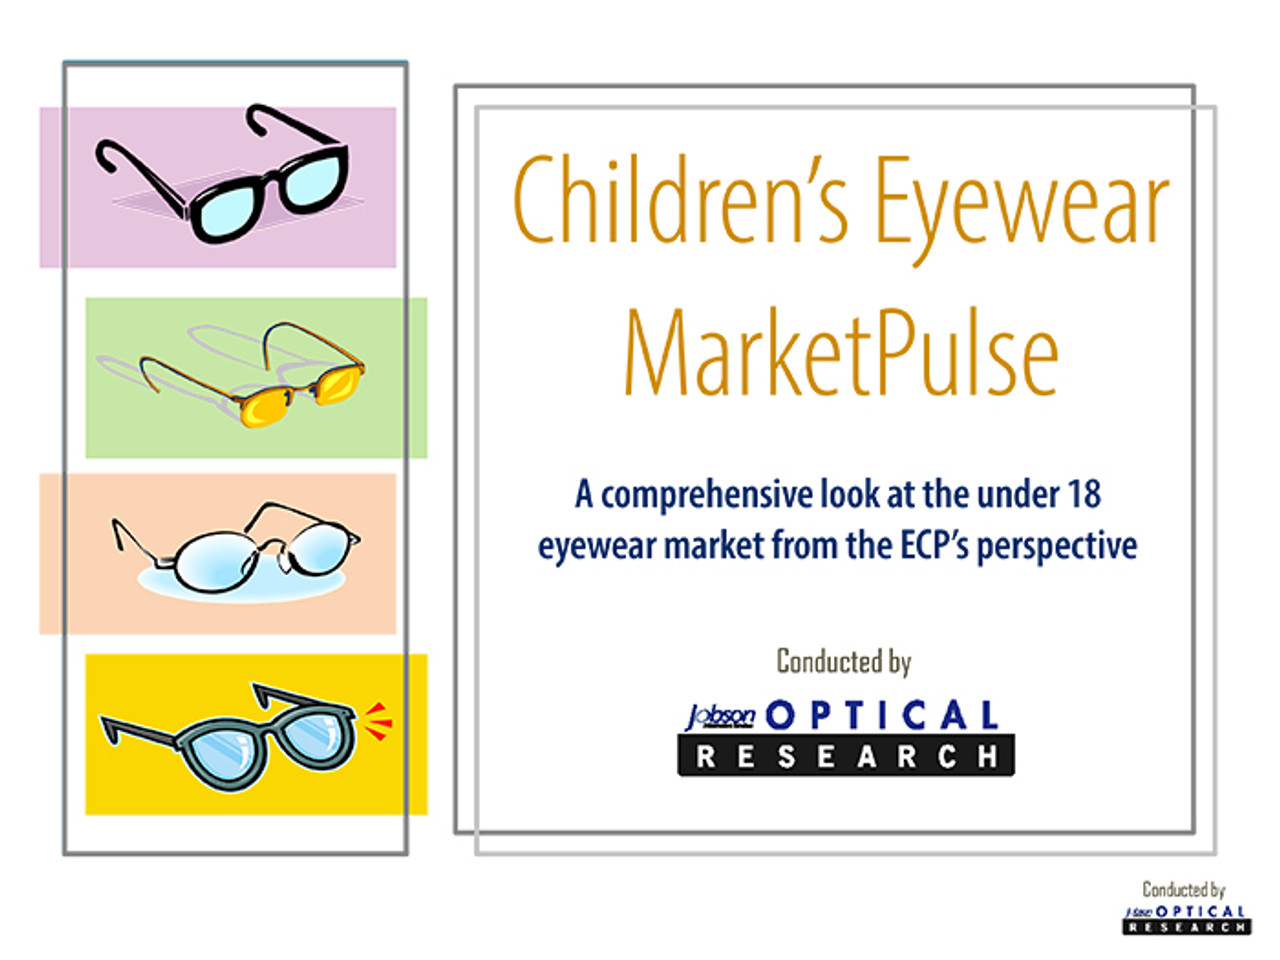 2019 Children's Eyewear MarketPulse